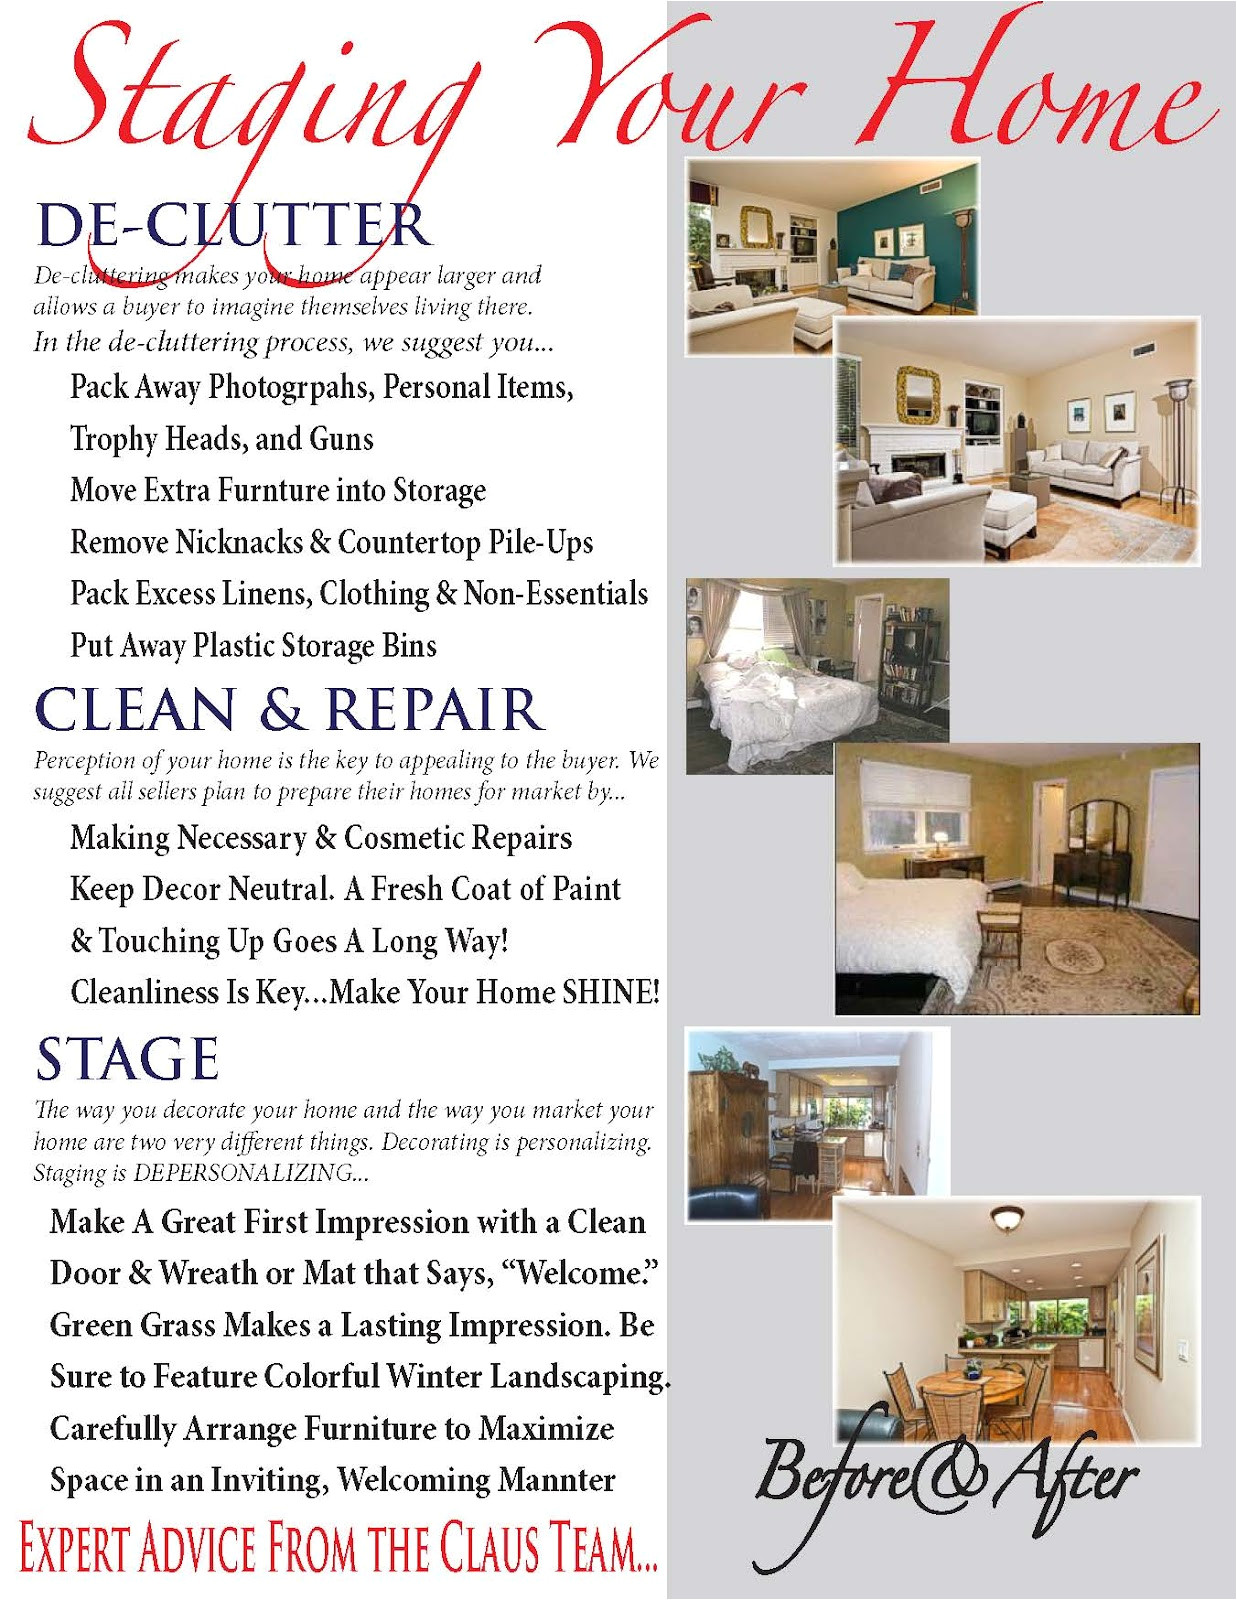 Home Staging Flyer Templates Re Location Matters Home Staging is A Vital Part Of